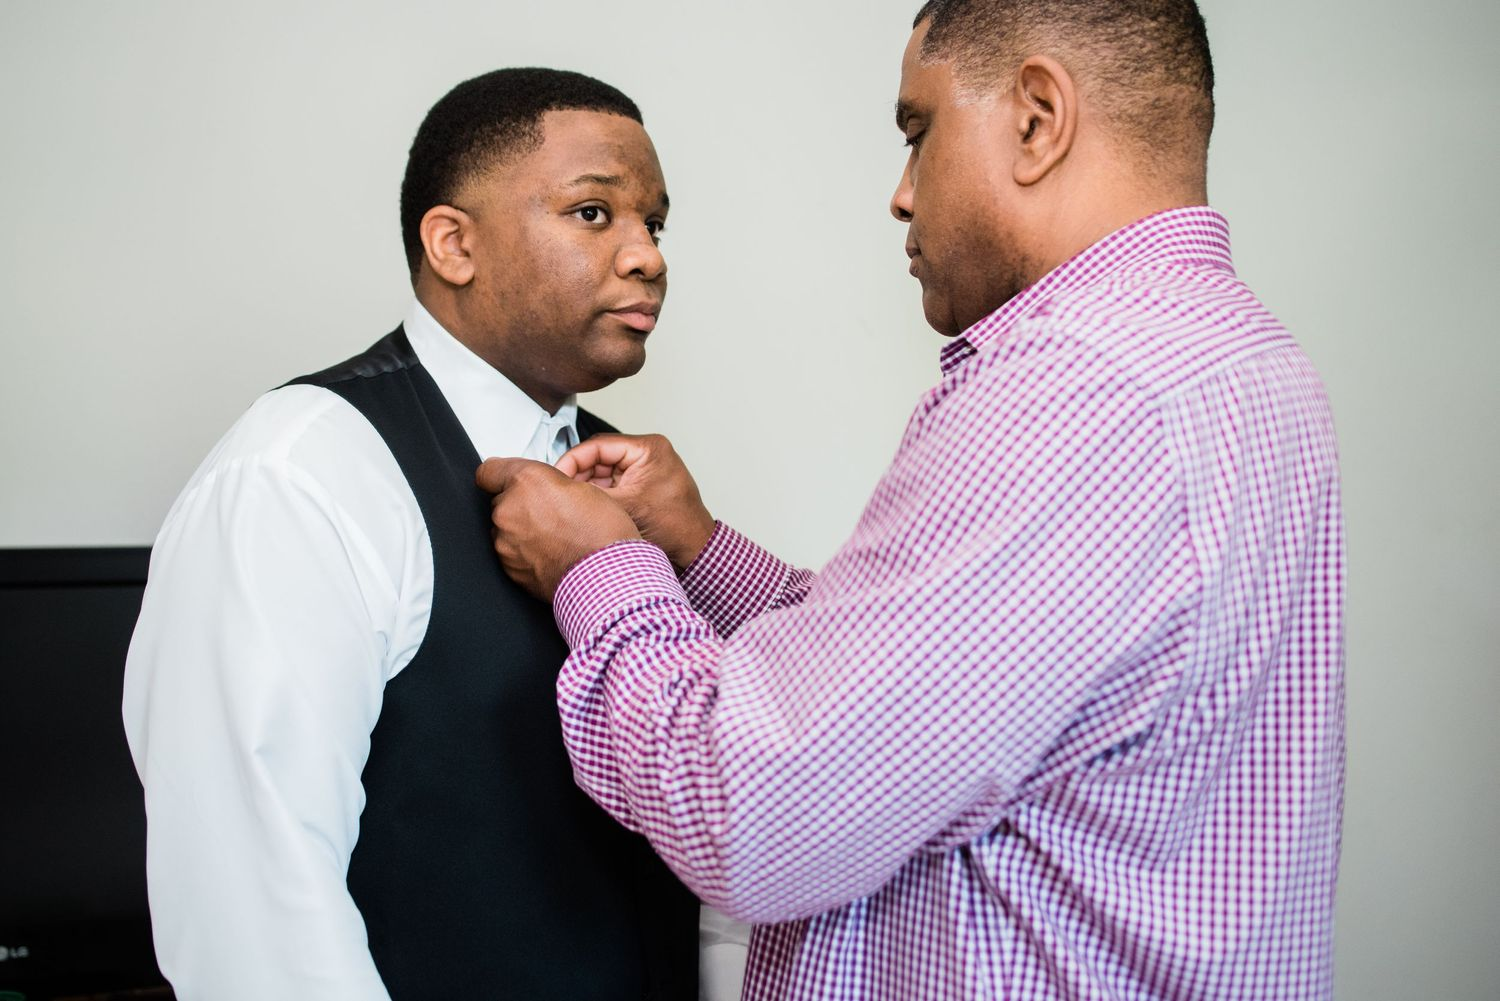 father of the groom helping groom with bowtie